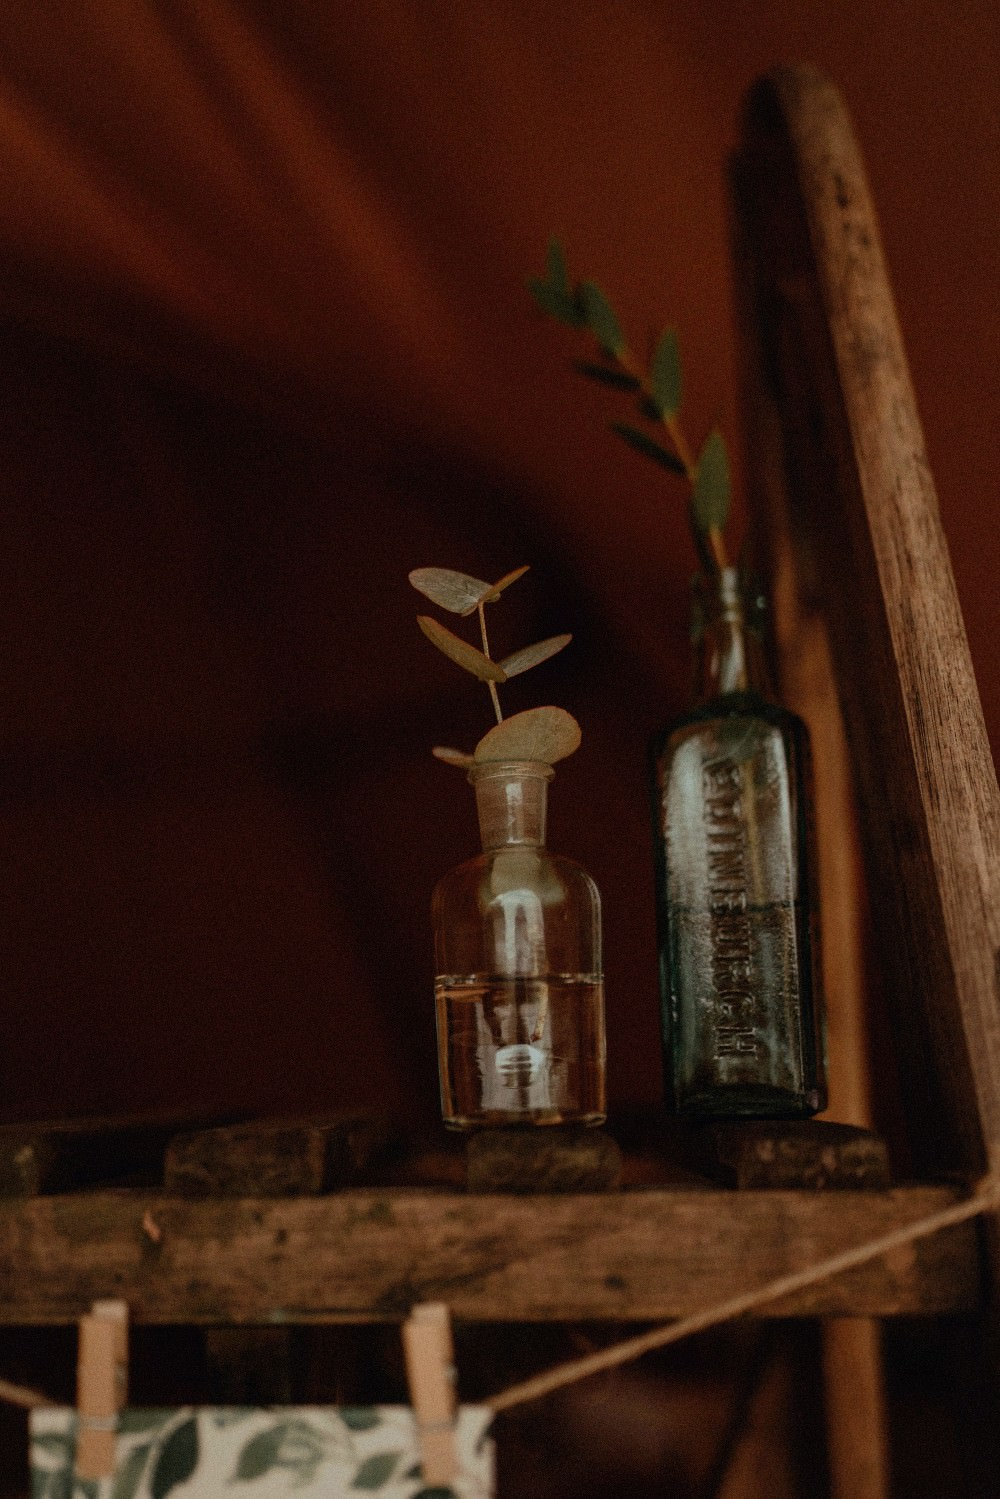 Bottles Greenery Foliage Eucalyptus Autumn Dark Red Wedding Belle Art Photography